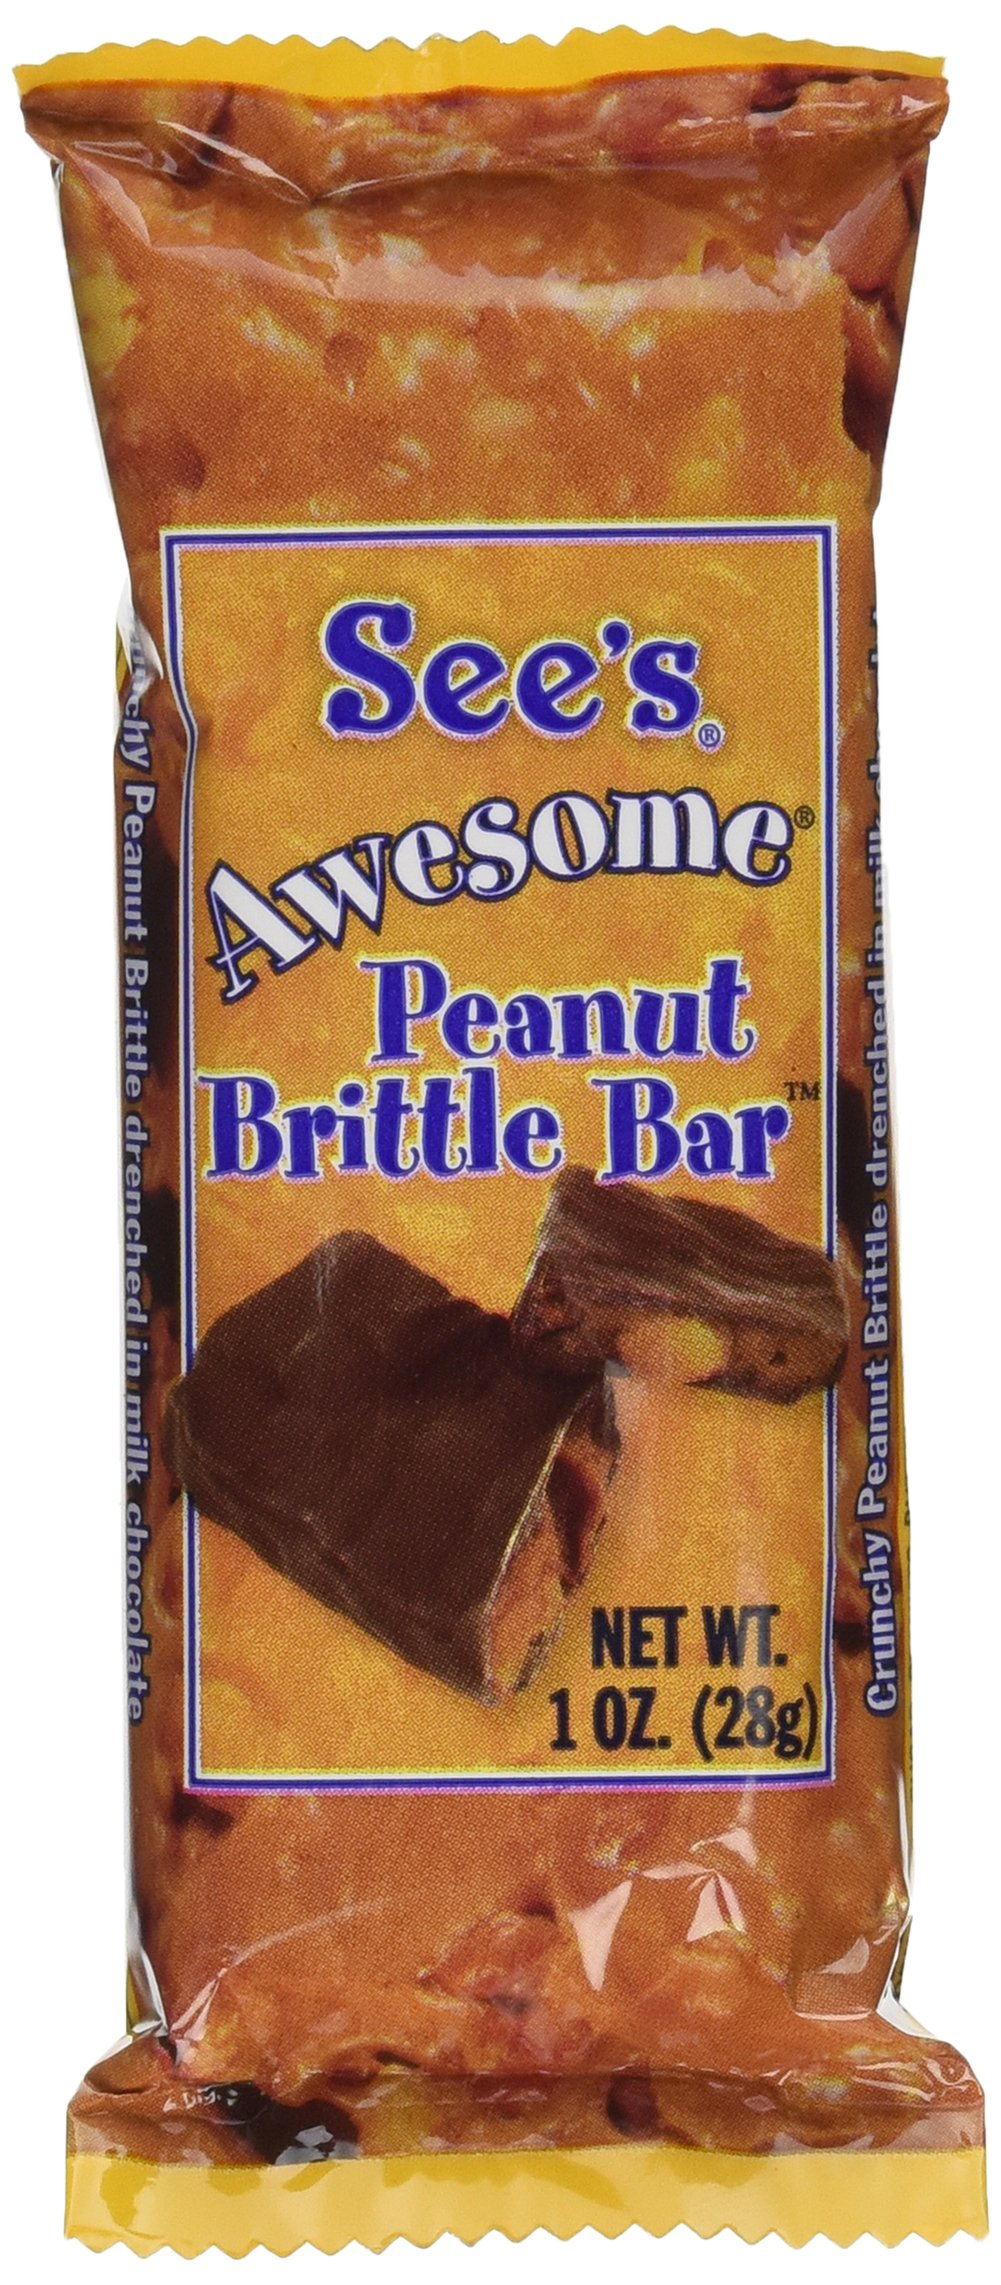 See's Candies 8 oz. Awesome Peanut Brittle Bar by See's Candies